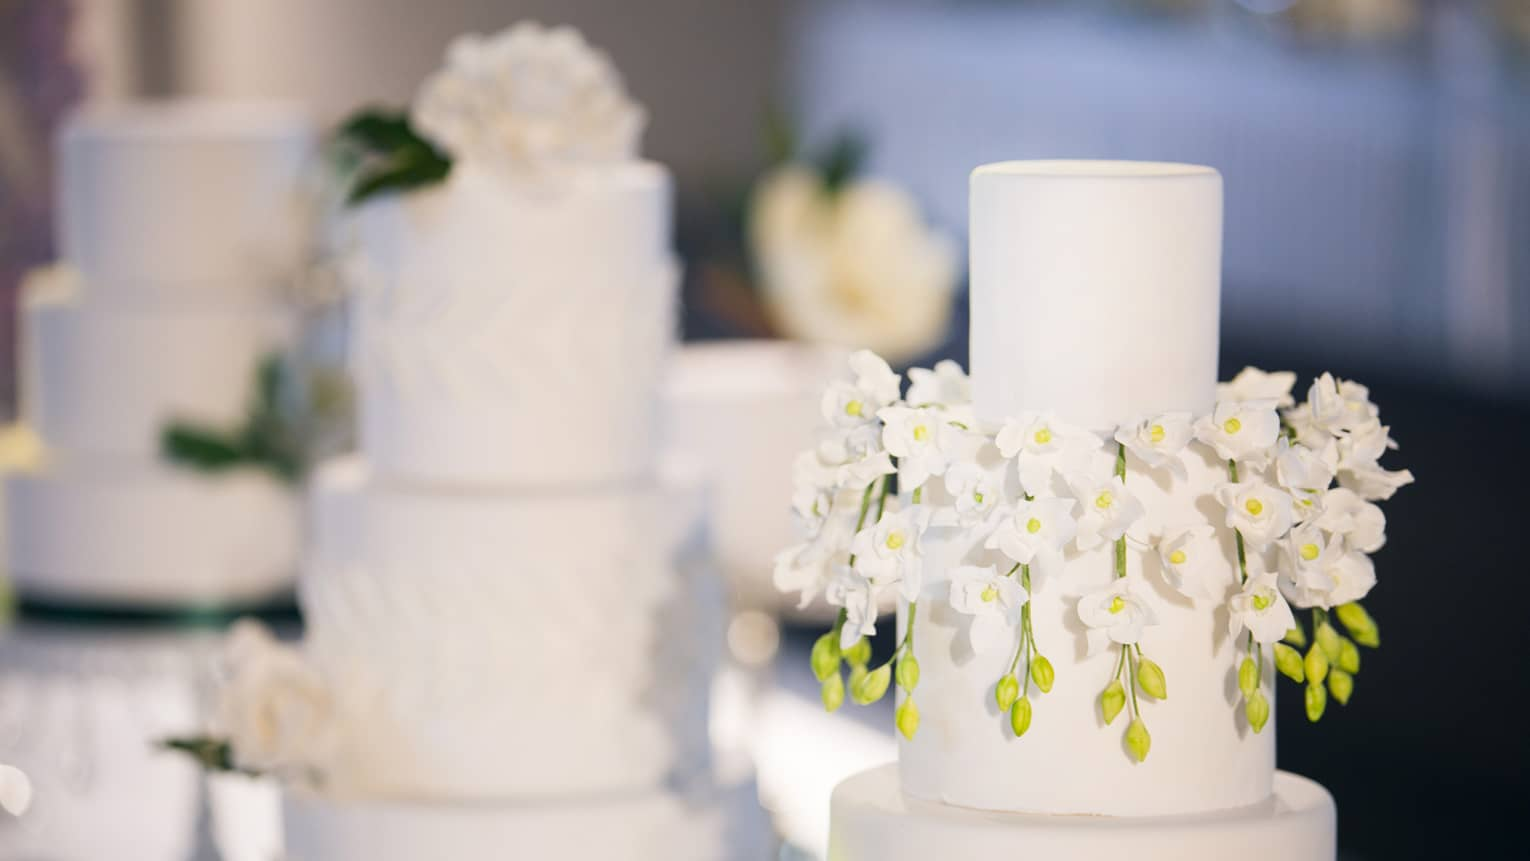 Three-tiered wedding cakes are each garished with white florals